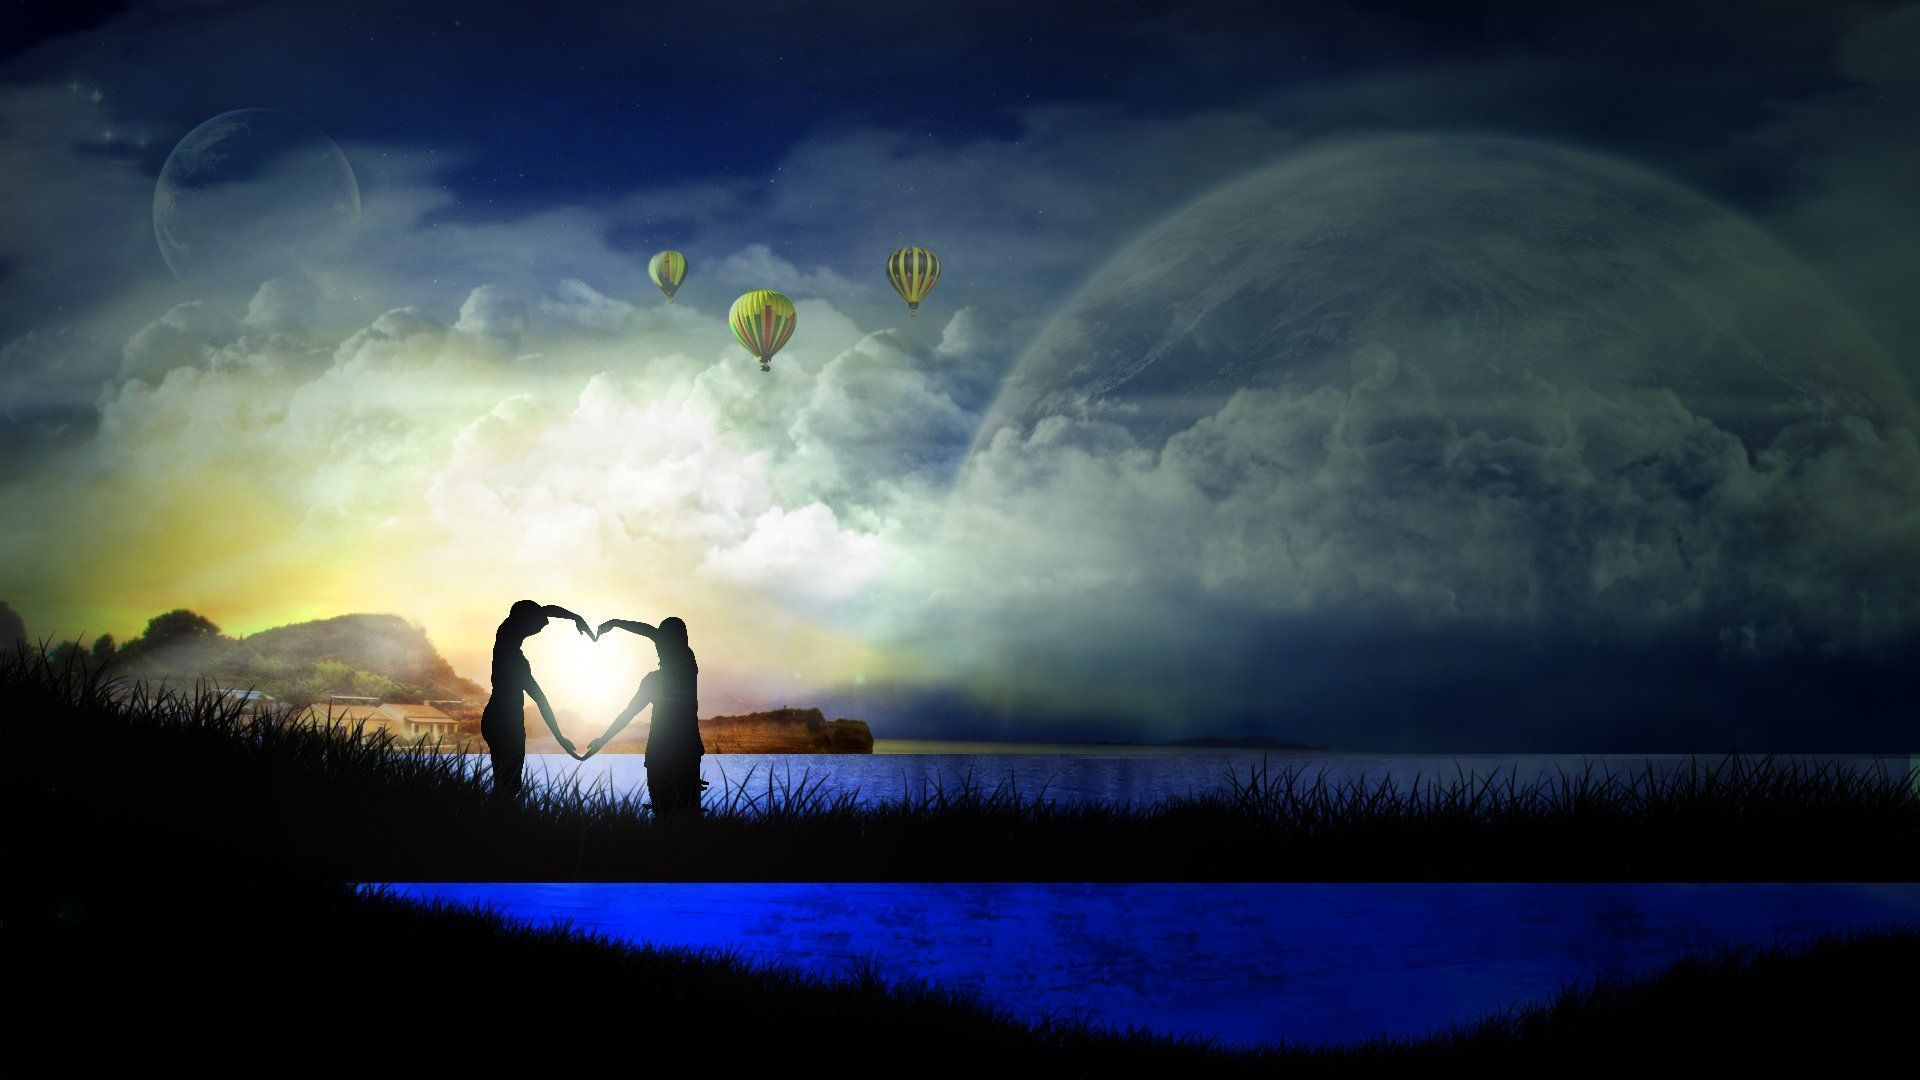 Good Night Love Couple Image hd desktop